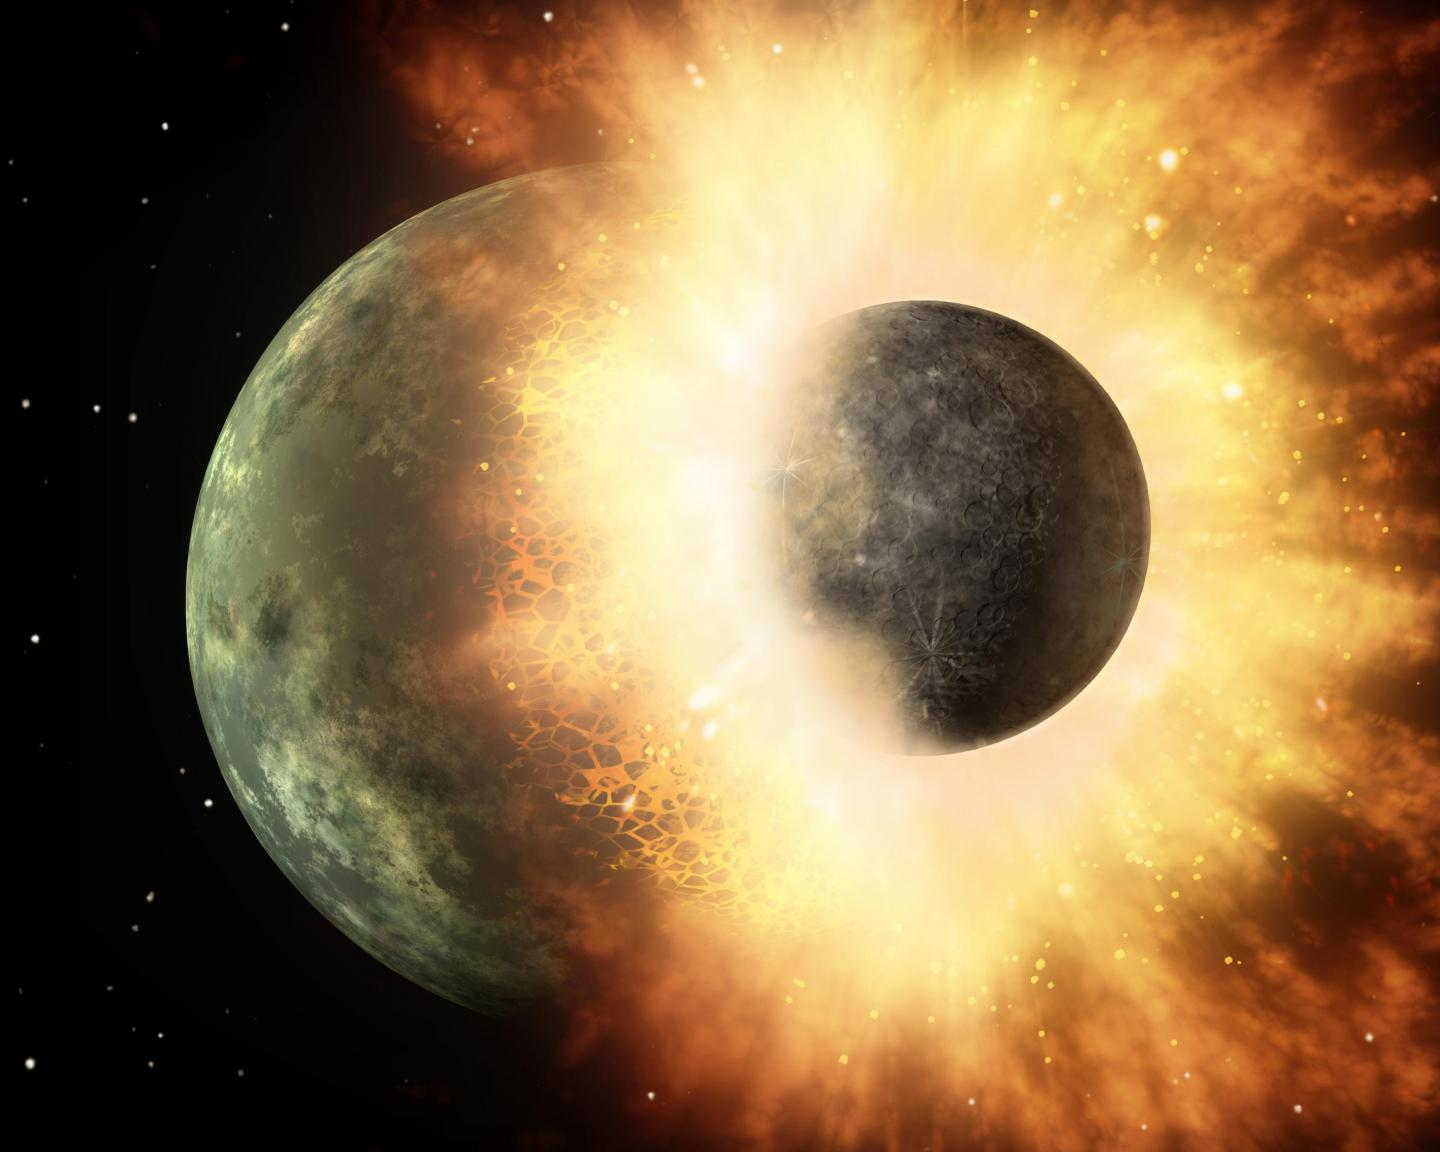 Artist rendering of planetary collision